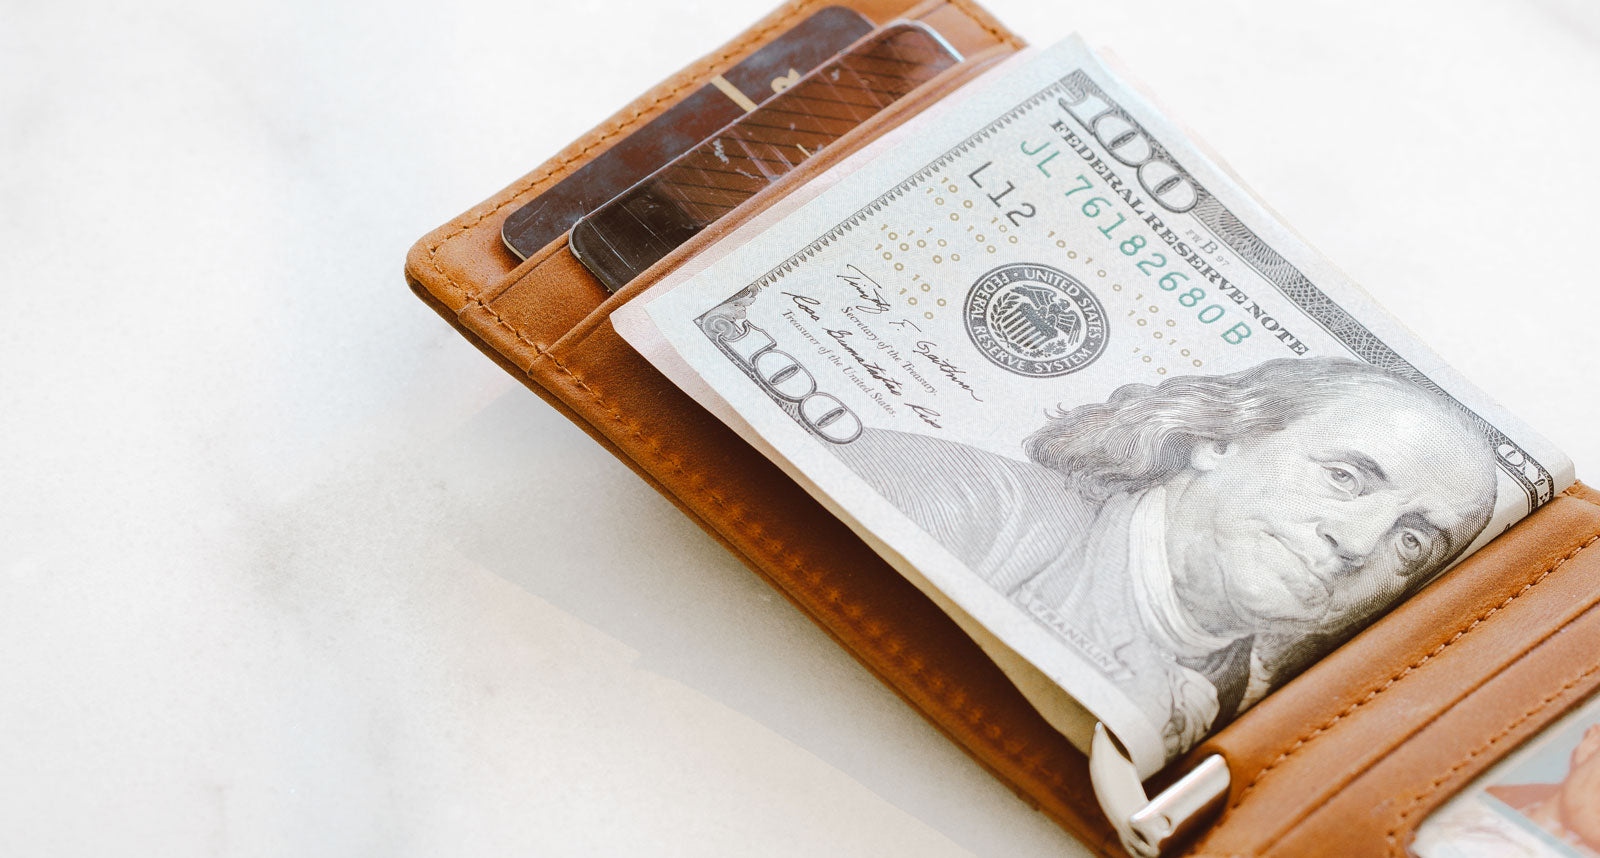 6 Simple Ways To Slim Your Wallet - Cash/A Thing of the Past